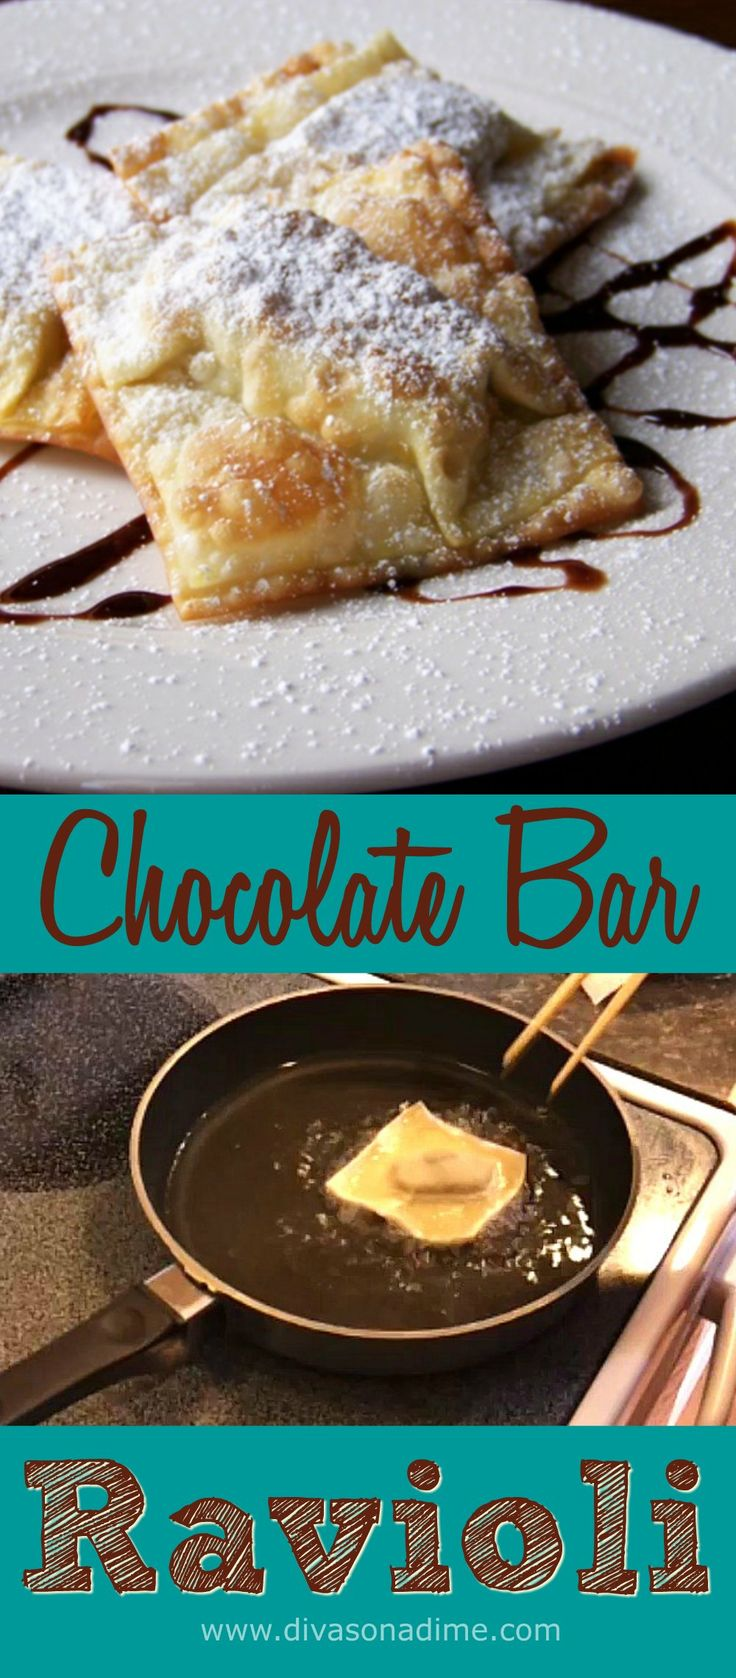 Here's a swoon worthy recipe for deep frying chocolate bars at home! Complete with a crispy flakey wonton wrapper. Too good to be true – and totally cheap to make! This fast and easy dessert is done in literally fifteen minutes from start to finish.